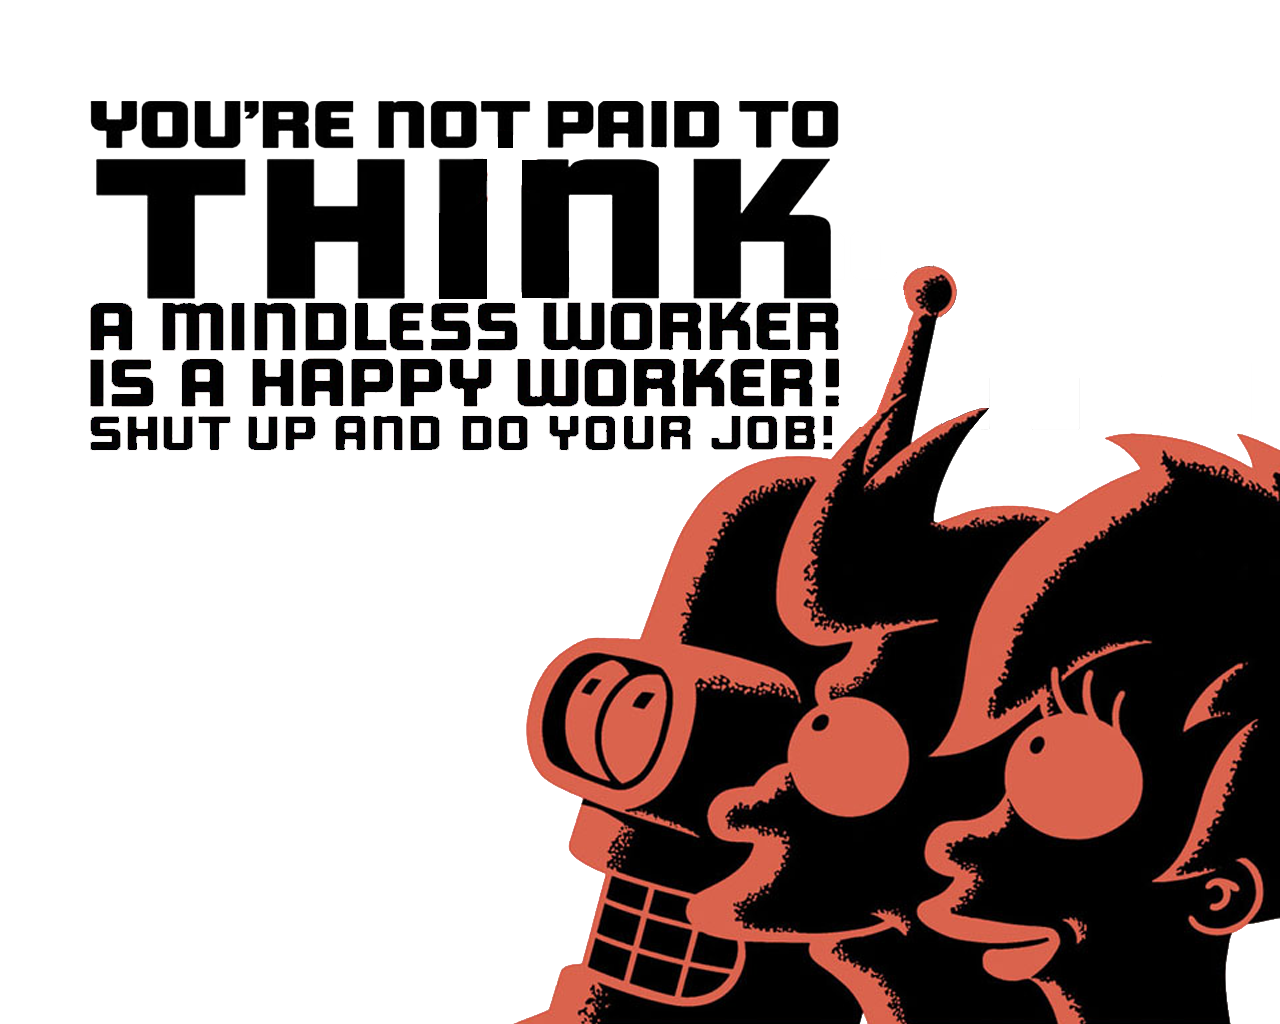 Futurama Bender Wallpaper 1280x1024 Futurama Bender Fry Turanga 1280x1024